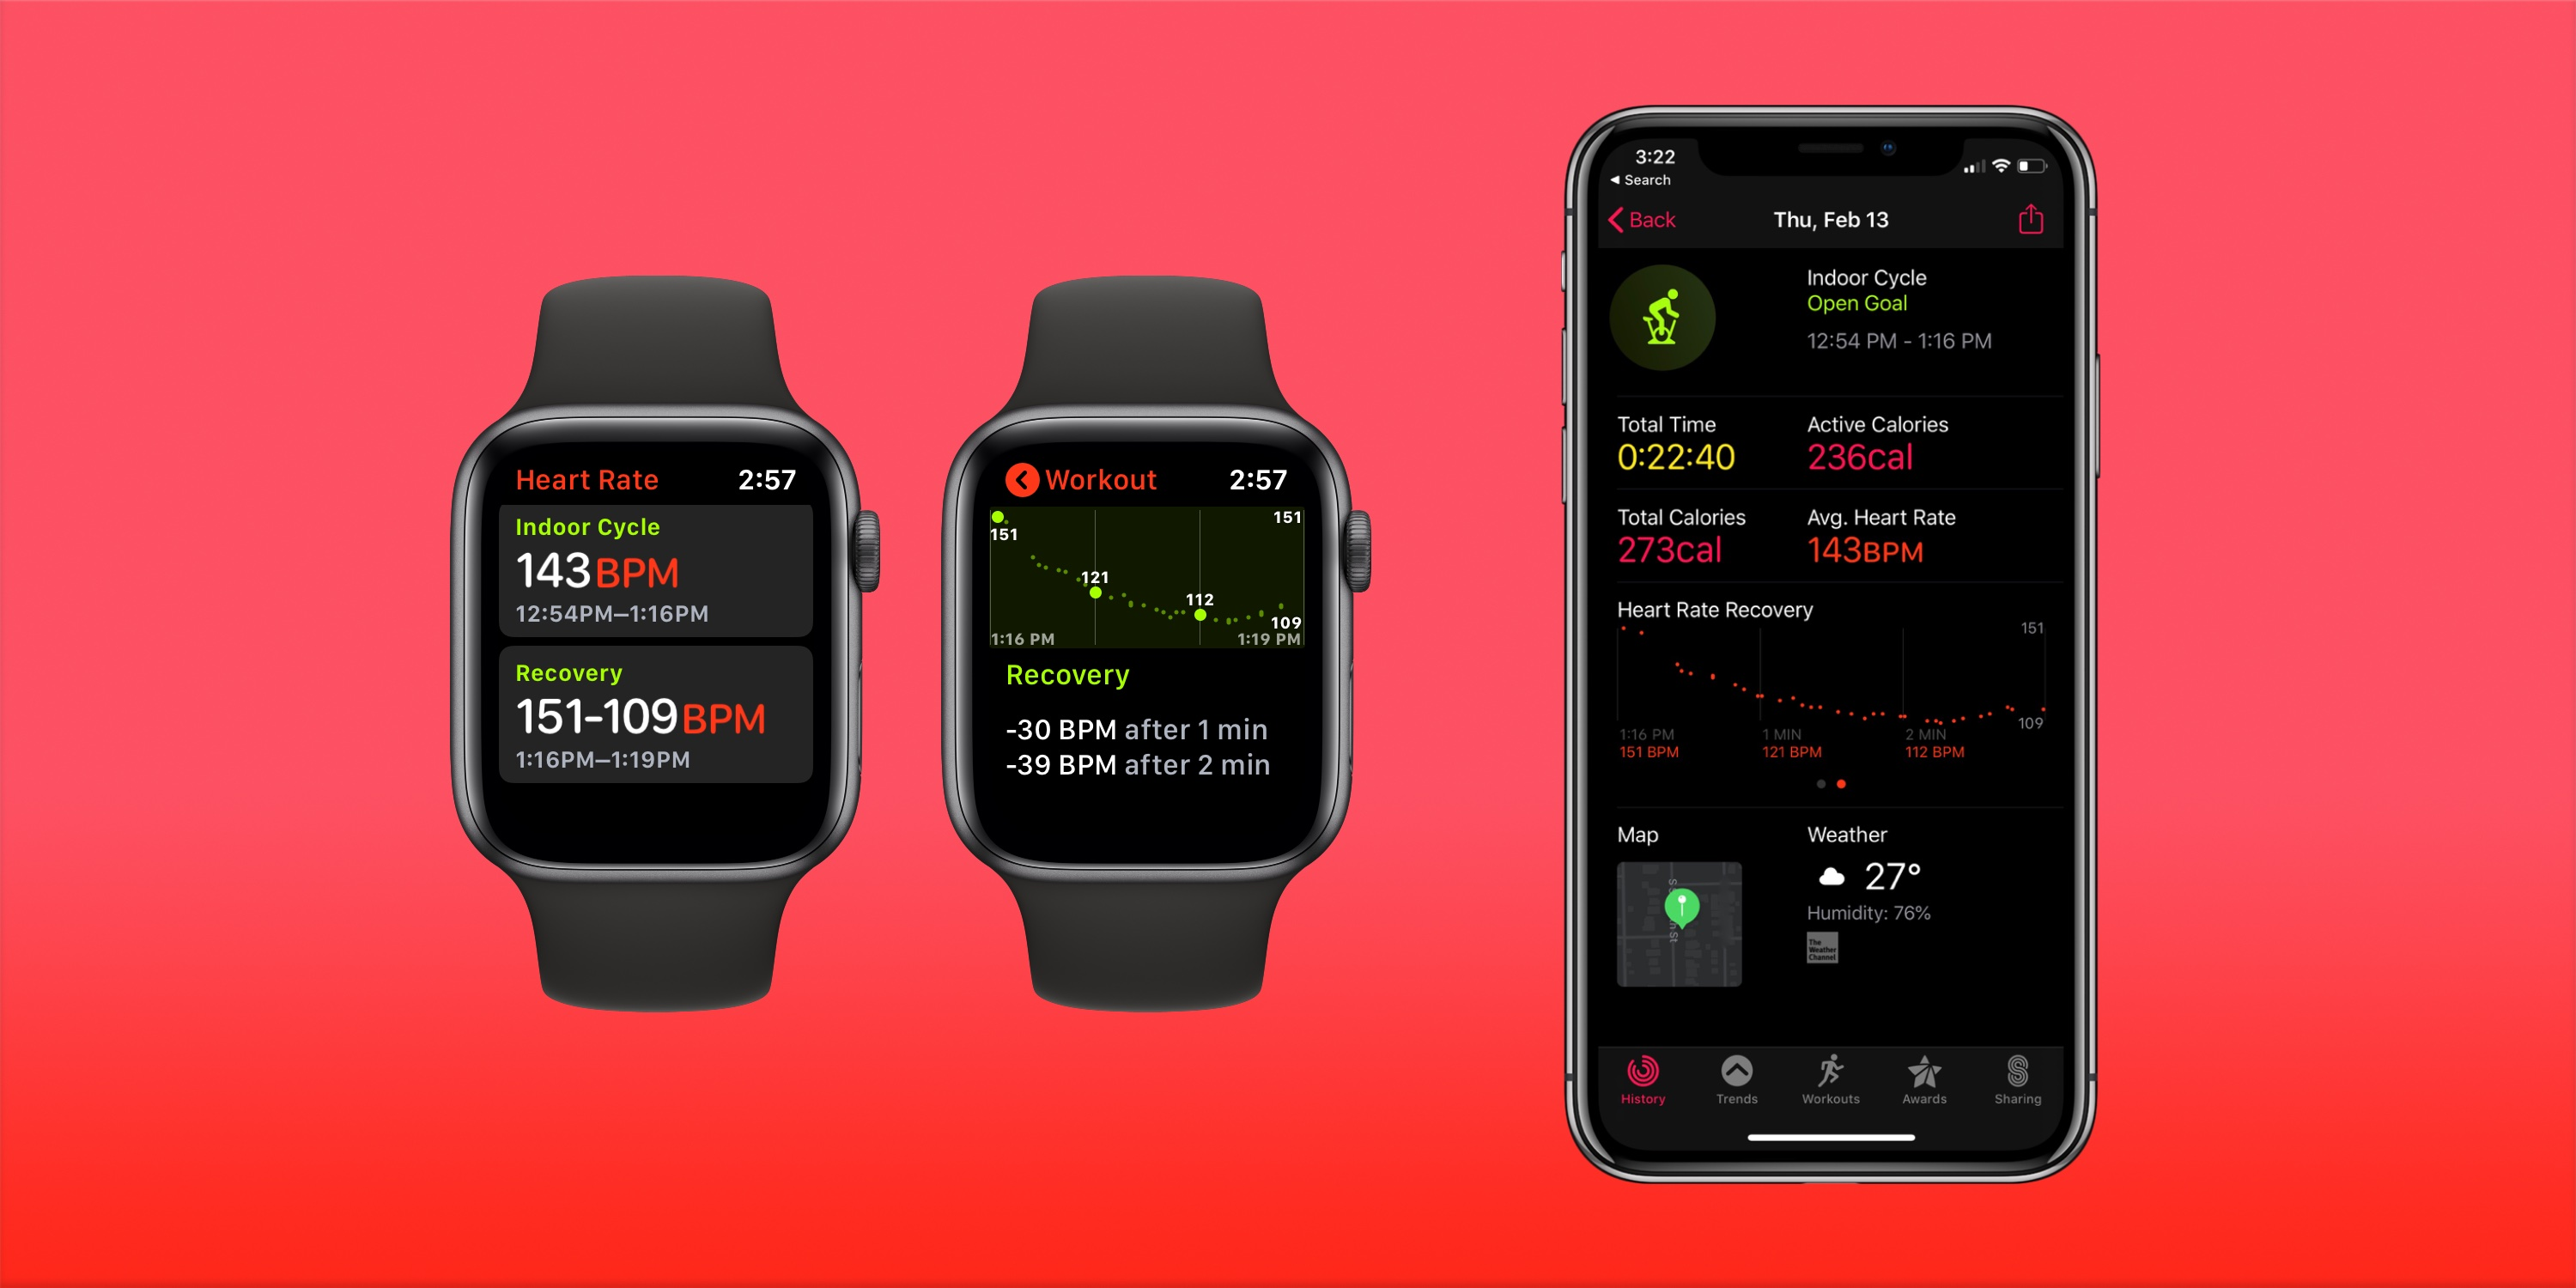 Apple Watch: How to see heart rate recovery and what is it? - 9to5Mac